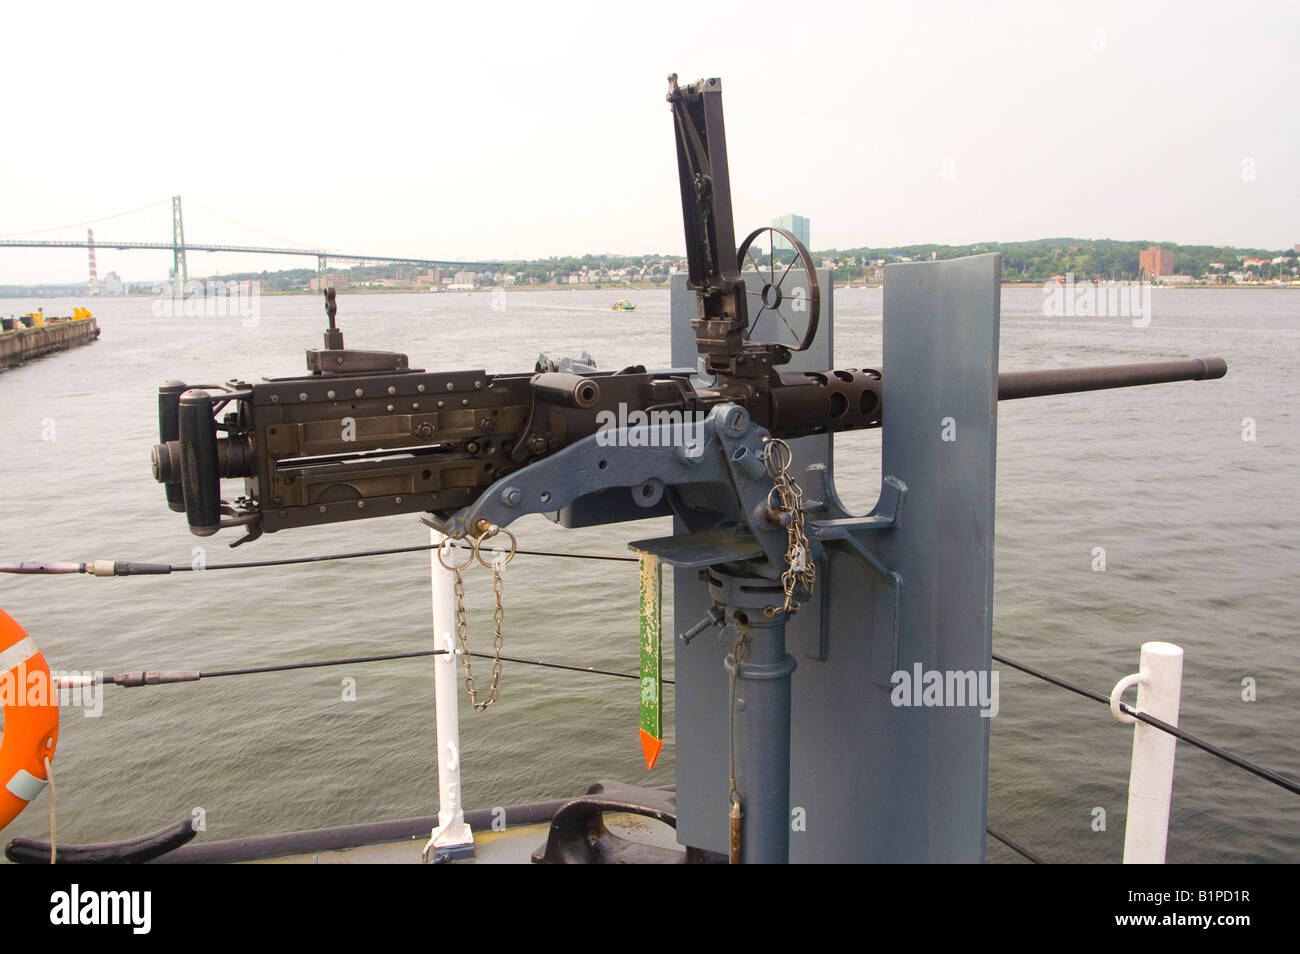 A .50 calibre machine gun mounted at the stern of a Canadian warship. - Stock Image